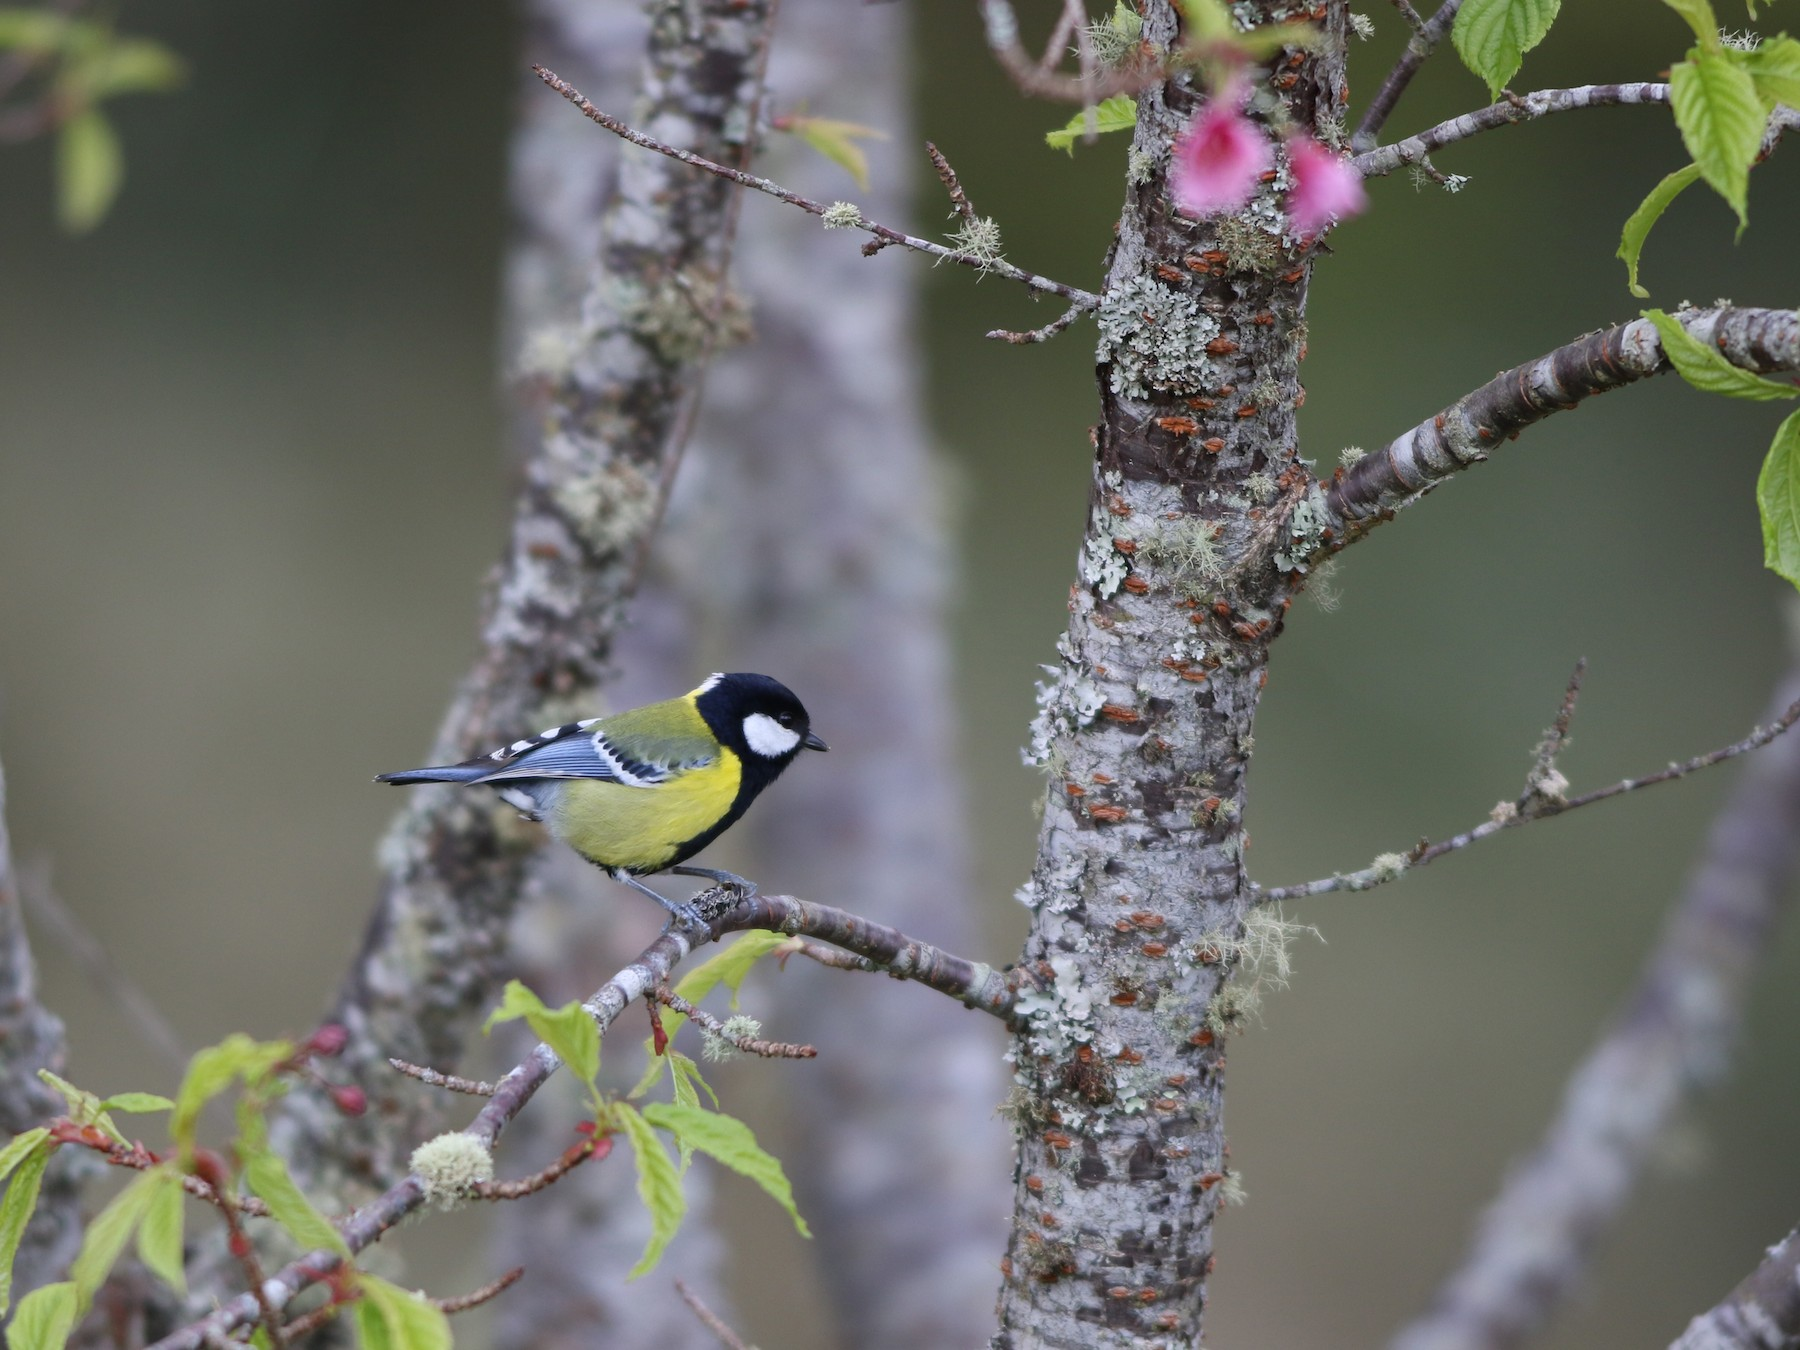 Green-backed Tit - 舜昌 蕭